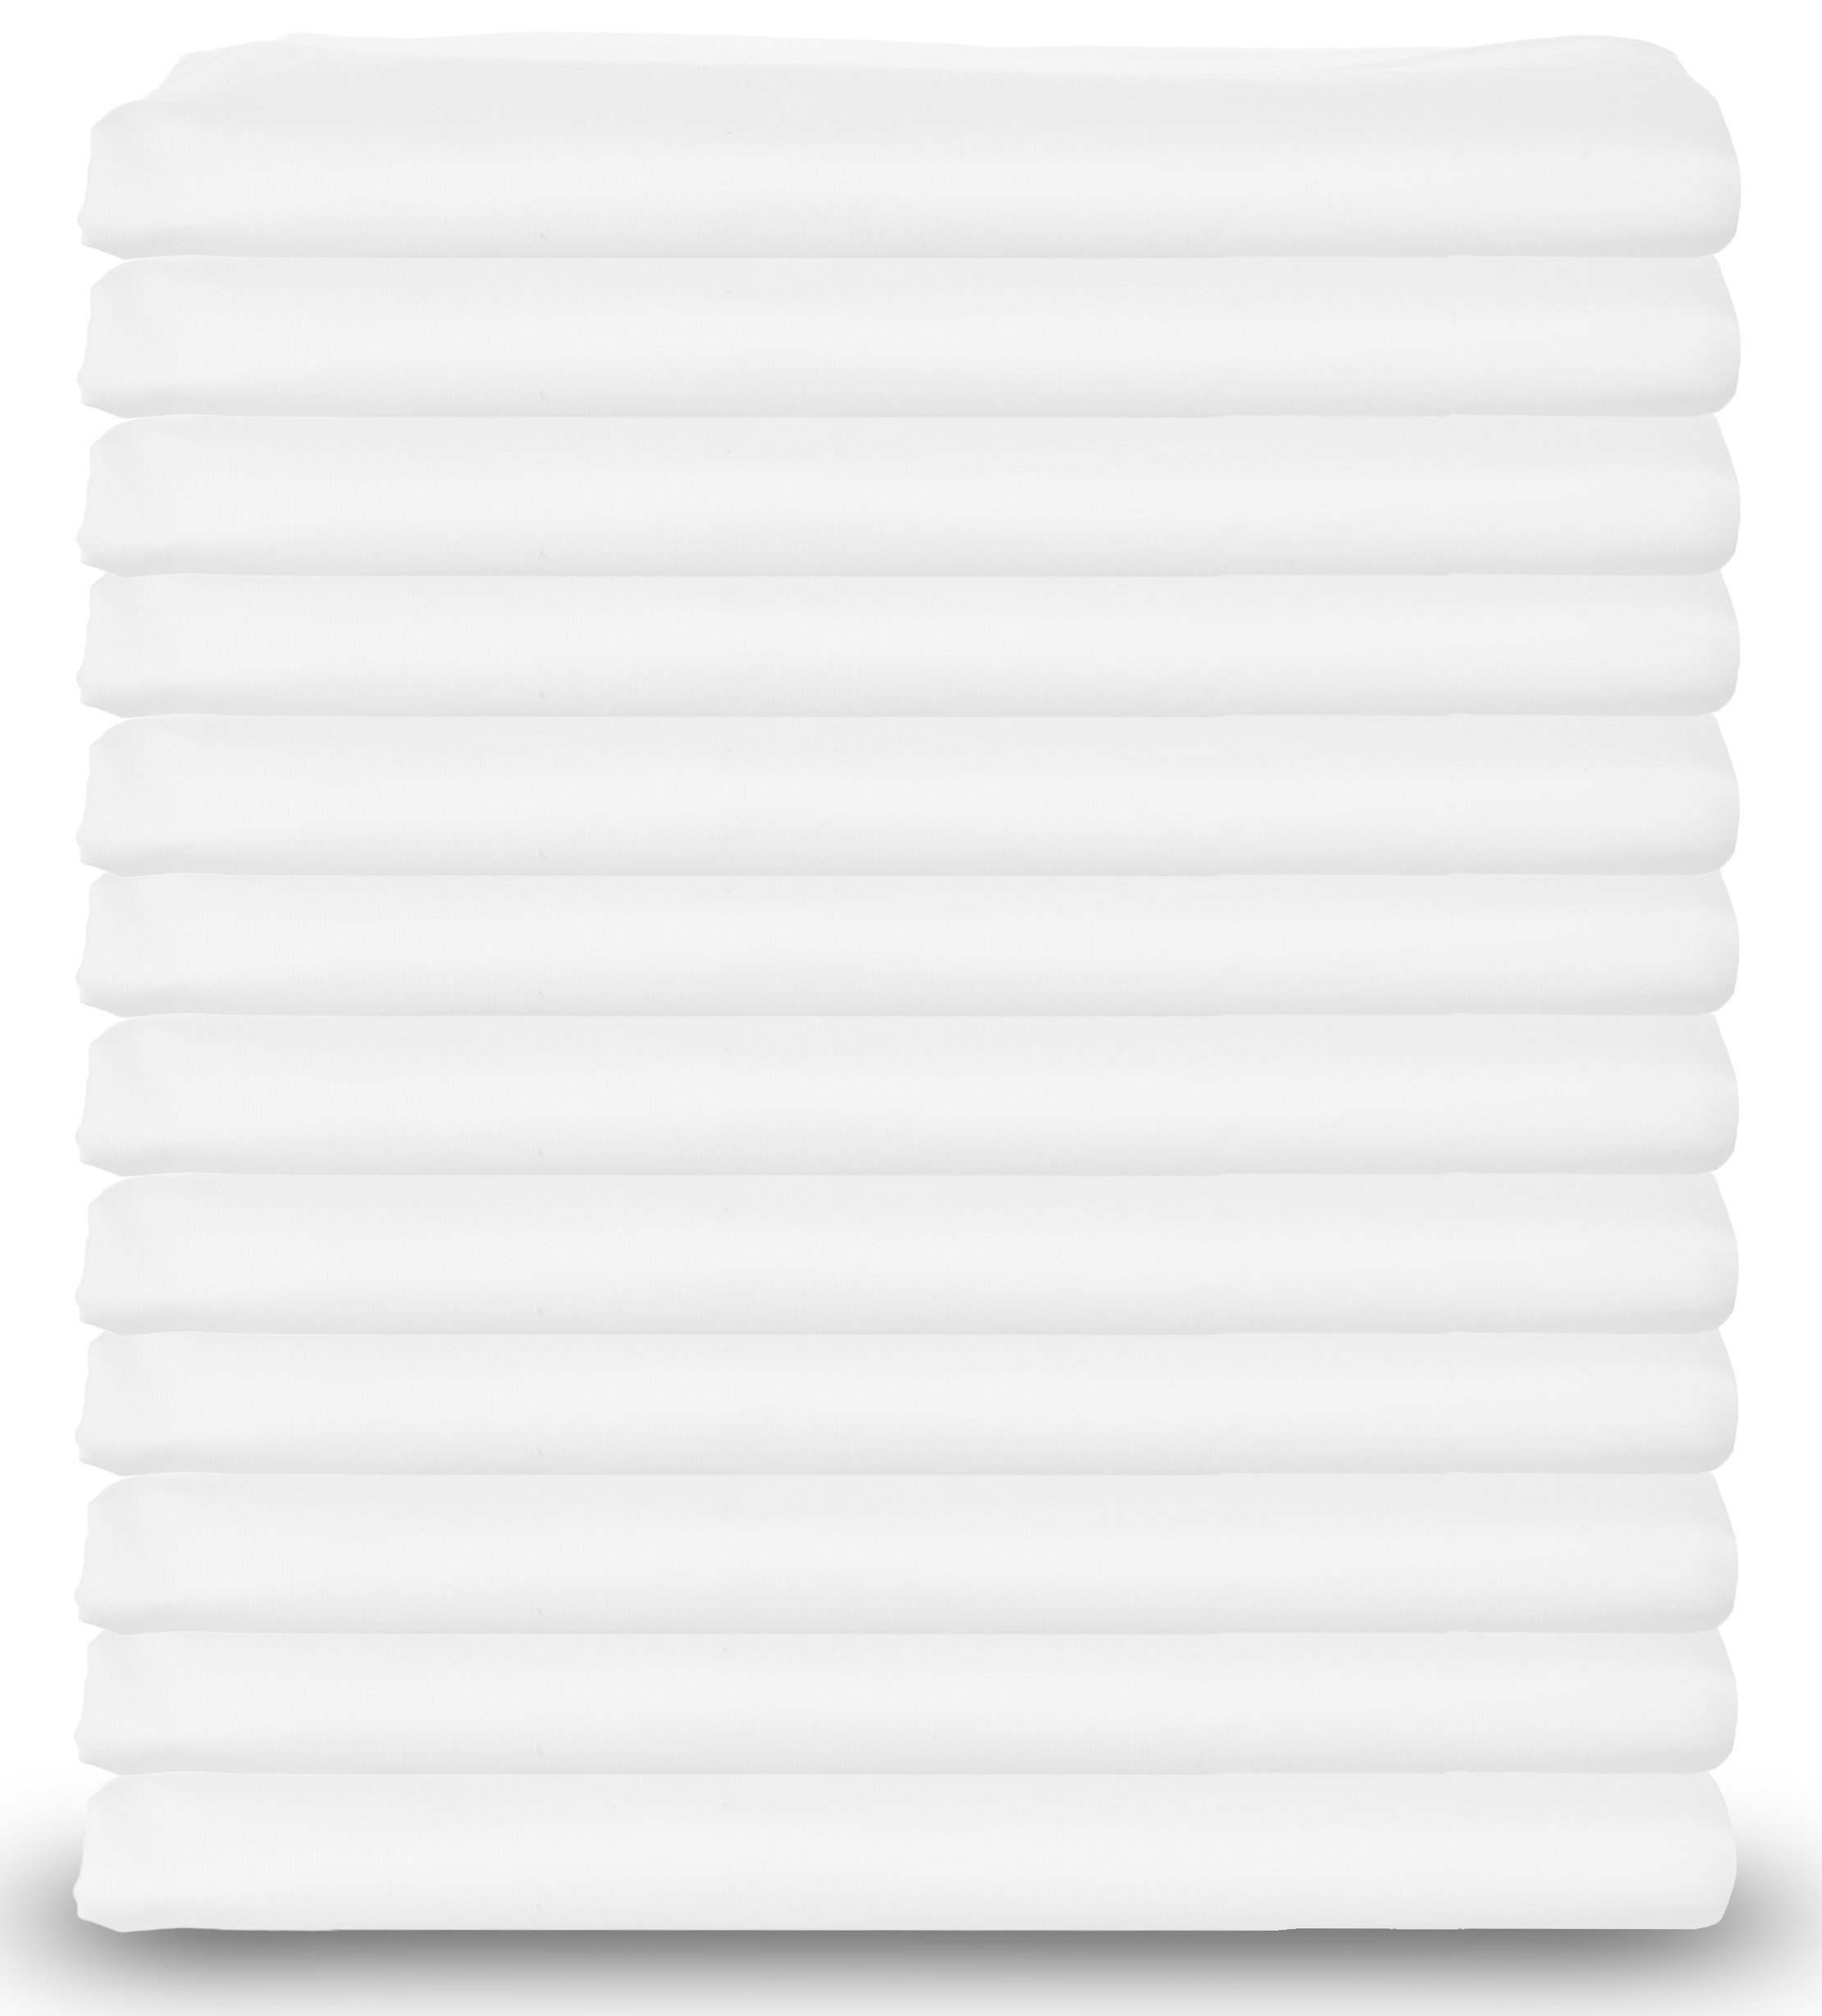 Standard Size White Pillowcases Bulk Pack, T-200 Heavy Weight Quality, PolyCotton,Set of 12